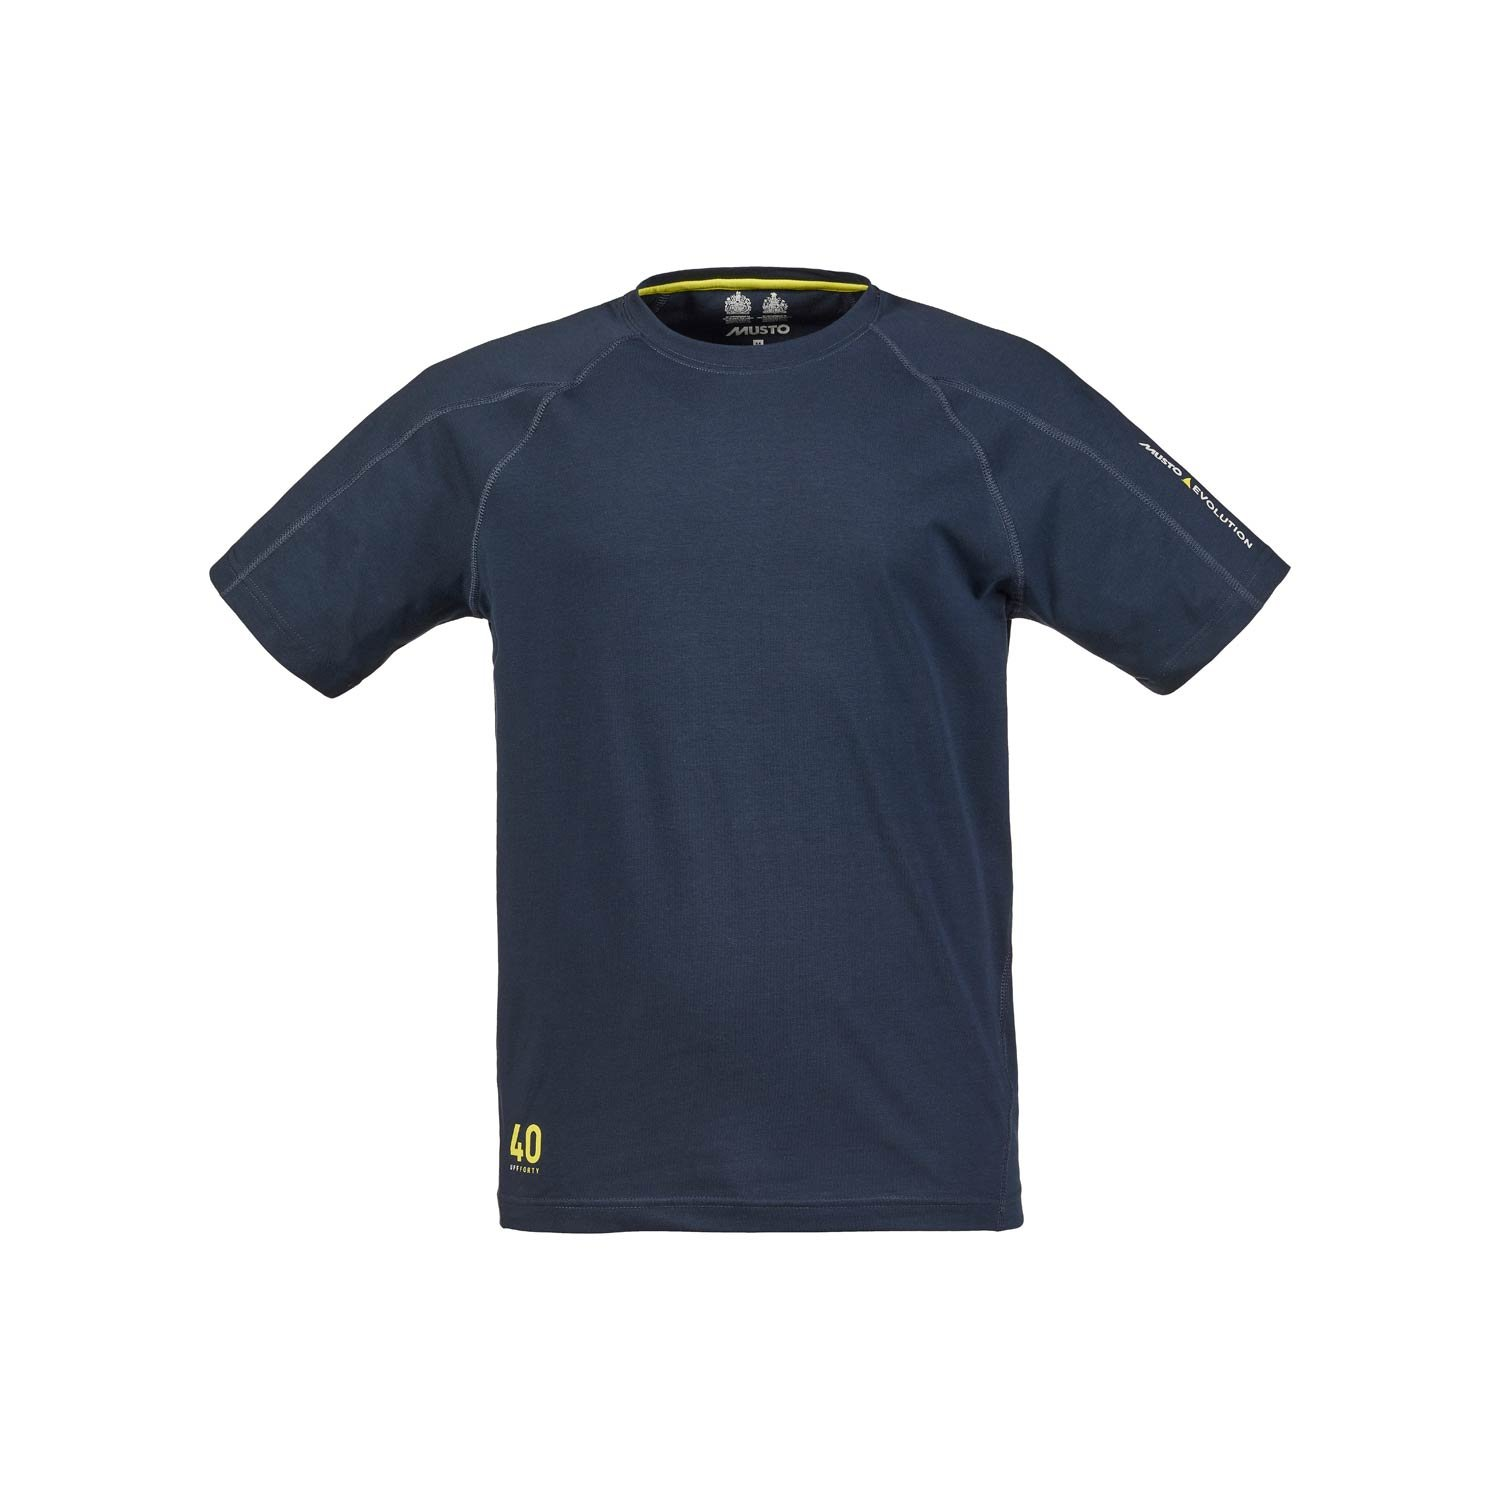 2016 Musto Evolution Logo Short Sleeve Tee in TRUE NAVY SE1361 Size - - Small